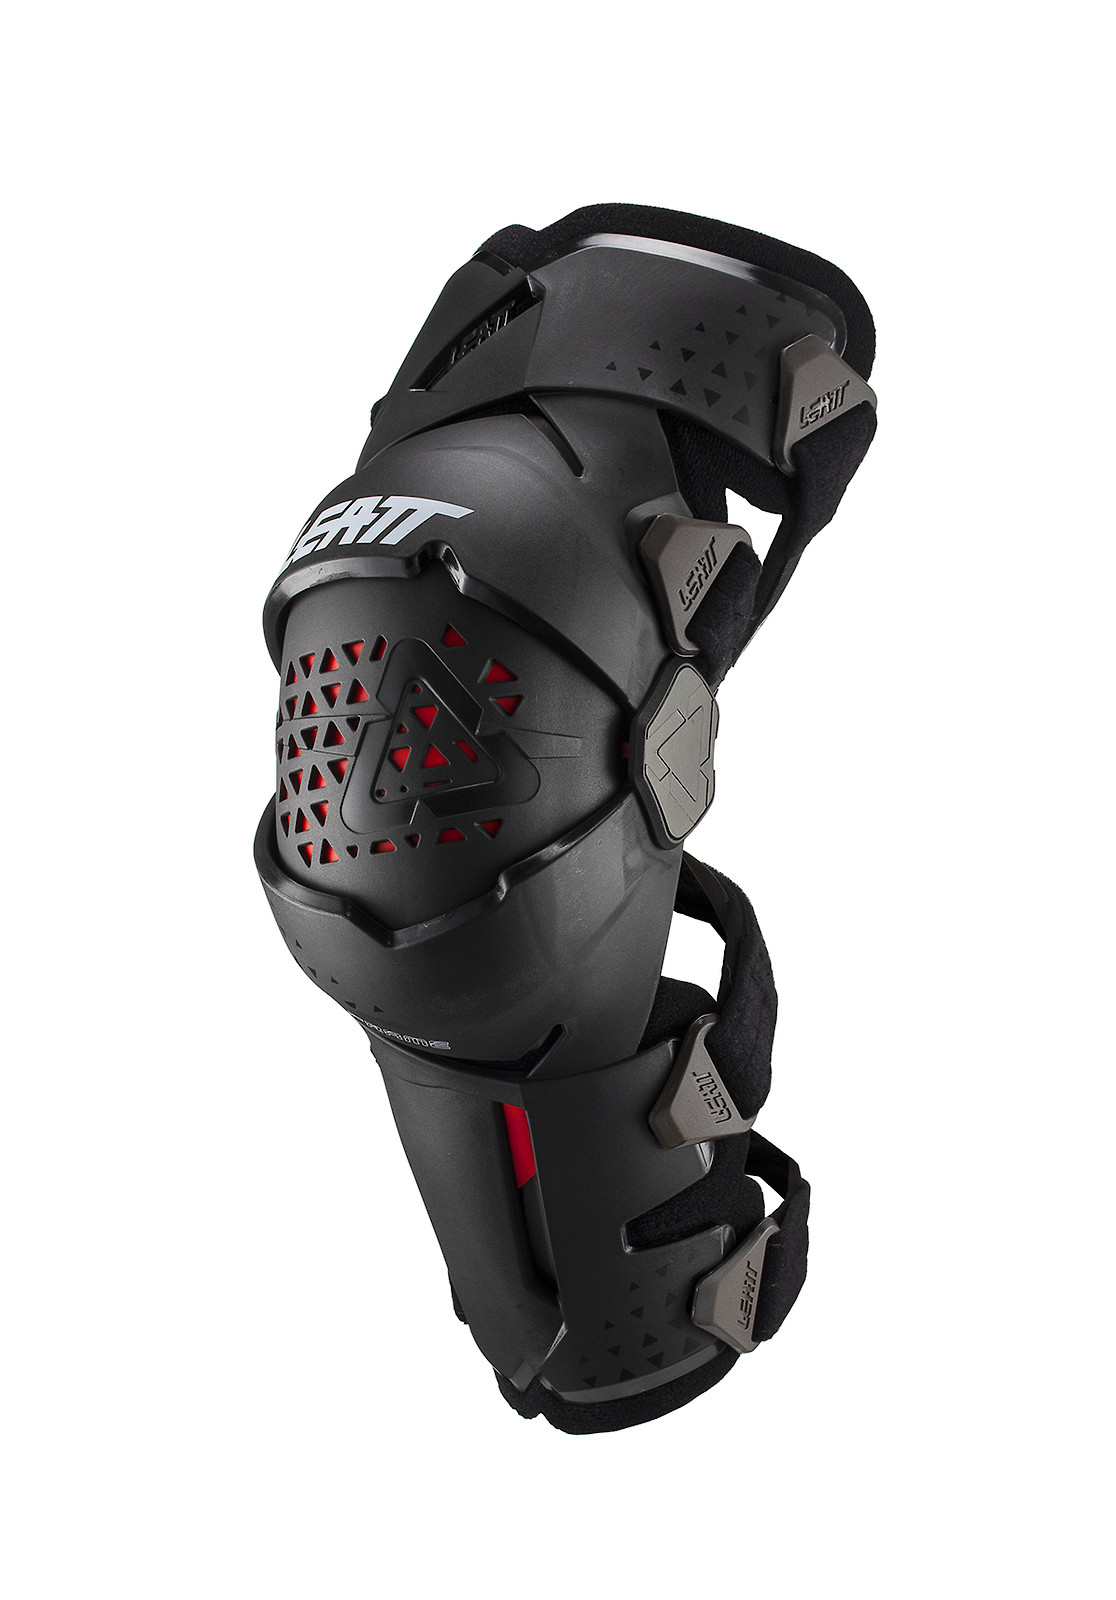 Leatt_KneeBrace_zFrame_frontRight_5019010250